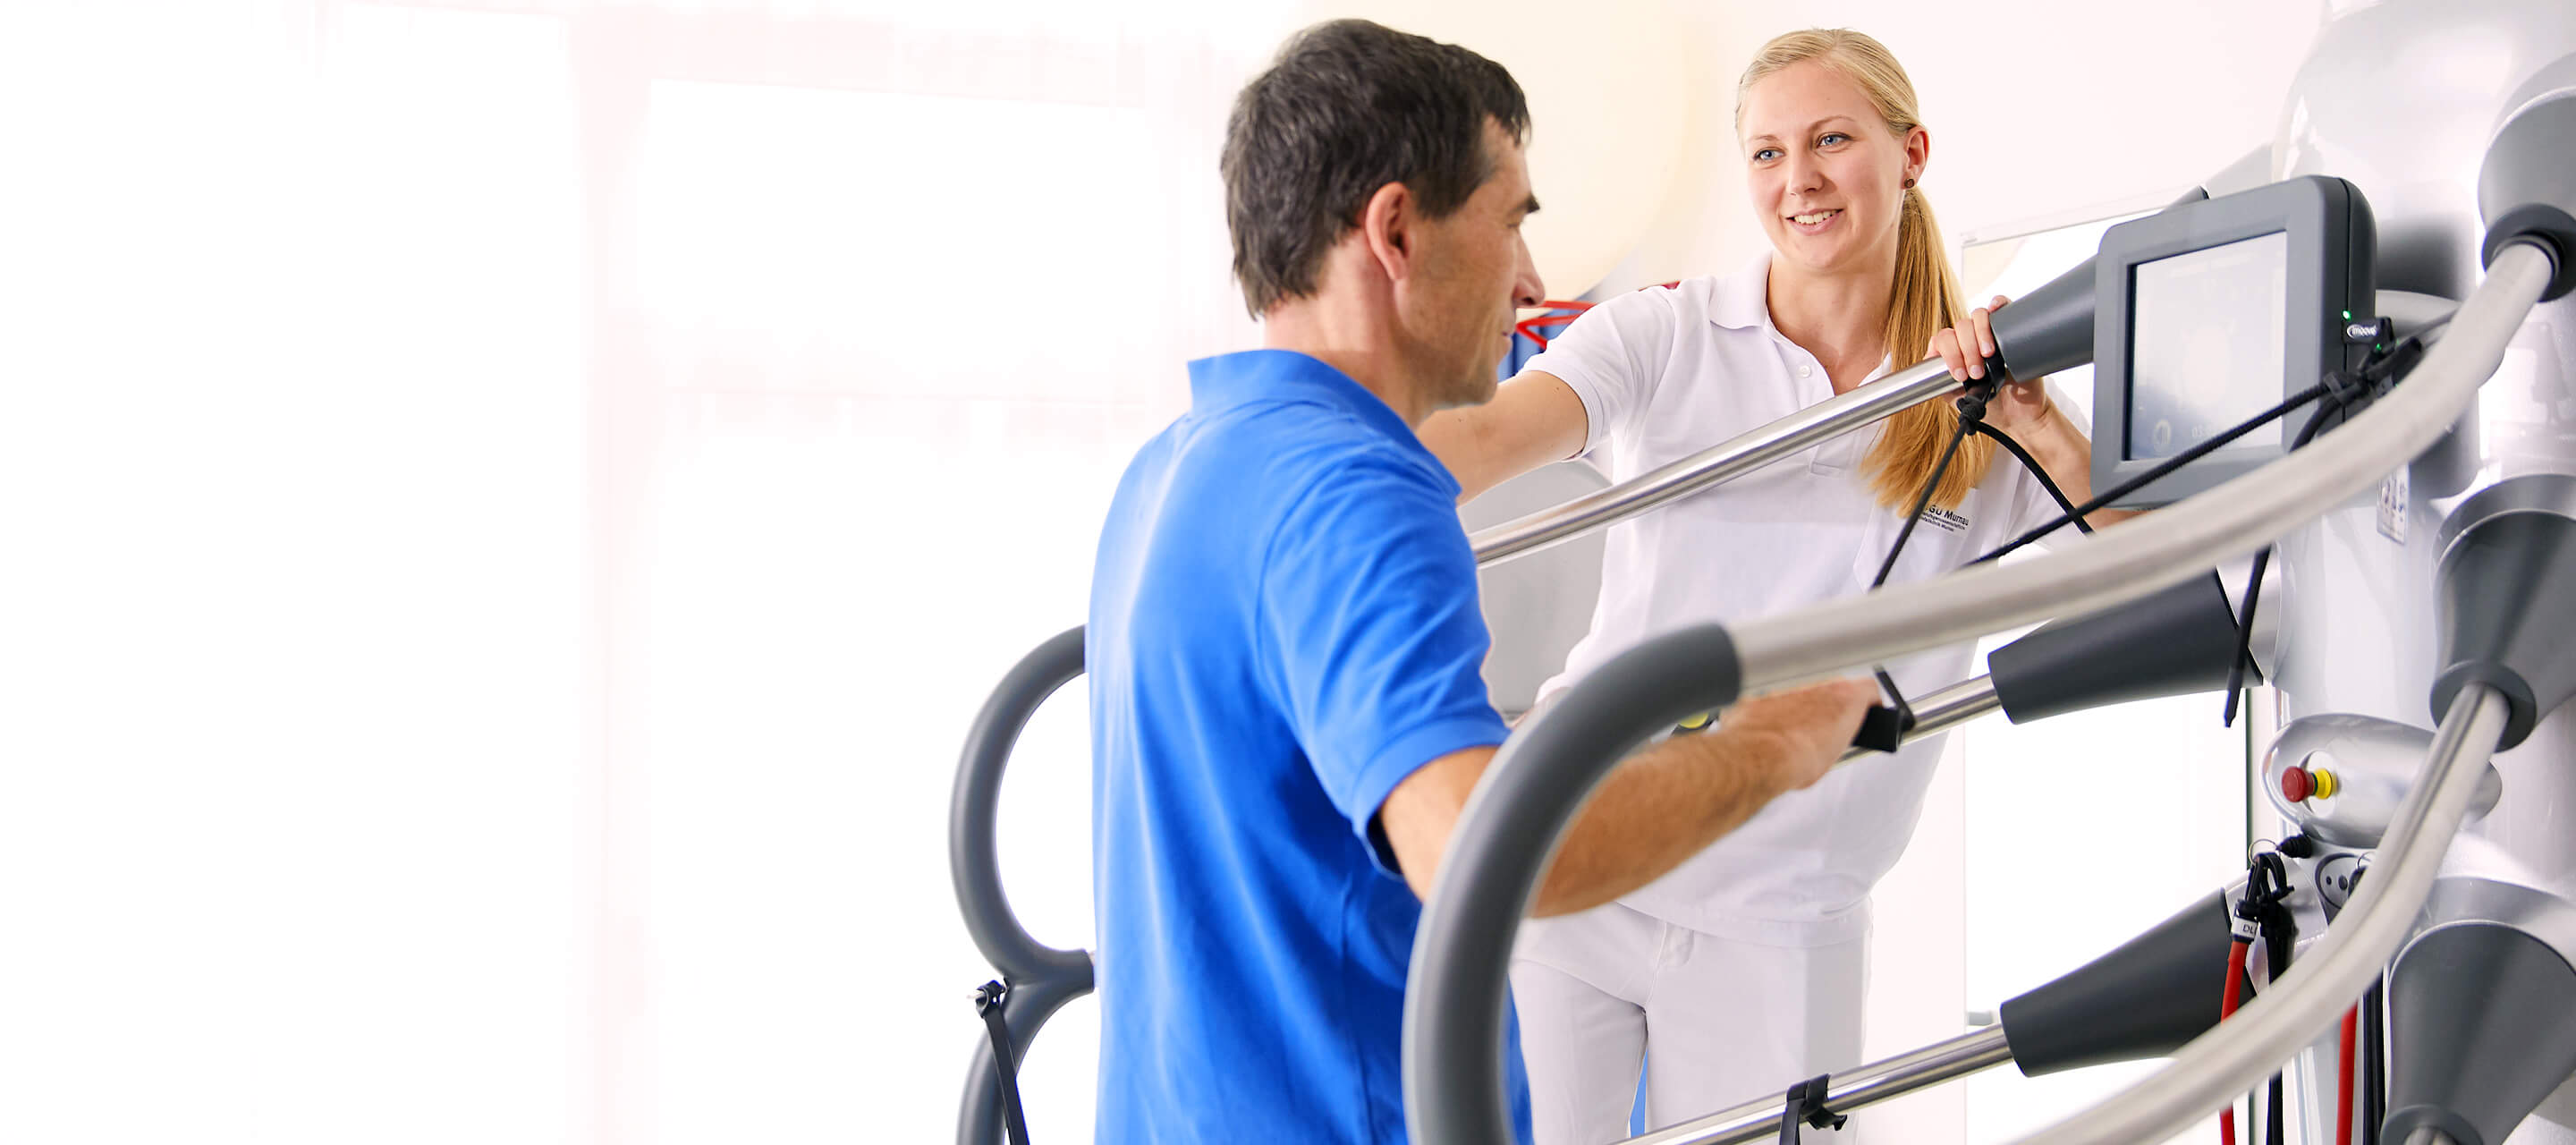 Patient is doing exercise for rehabilitation